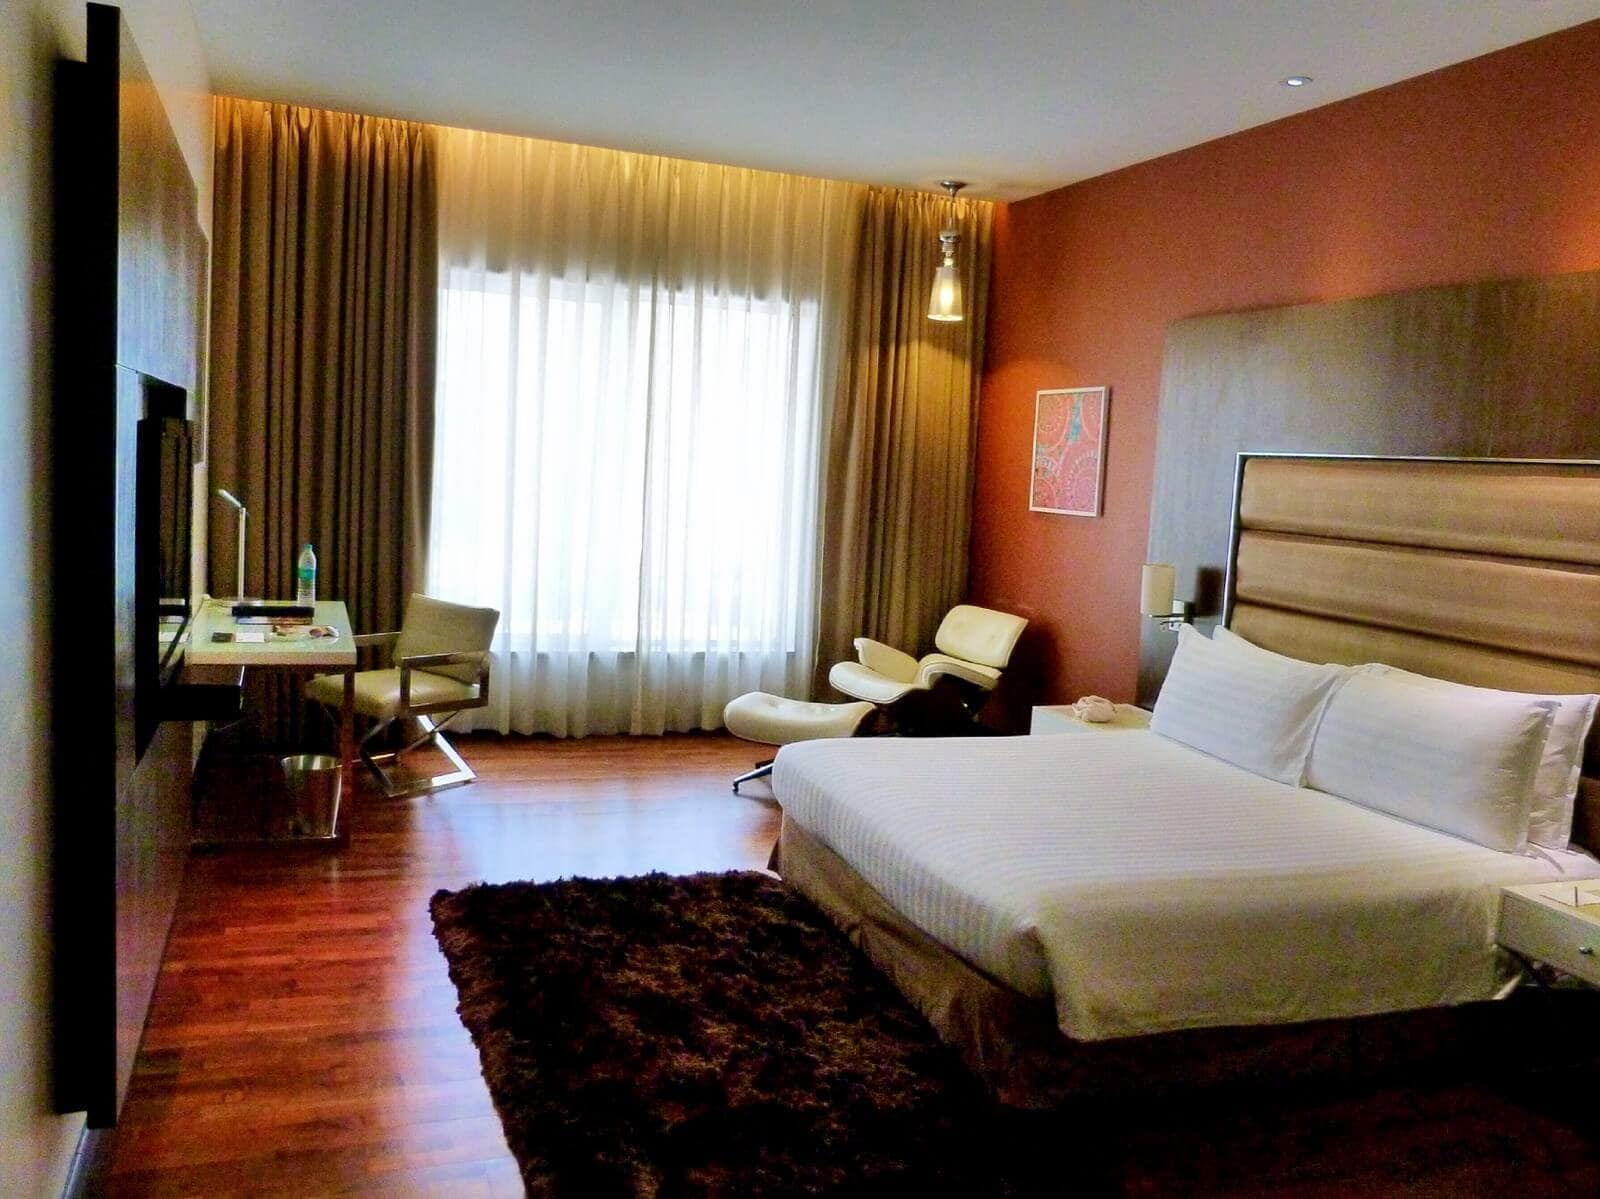 Deluxe Room at The Deltin, Daman